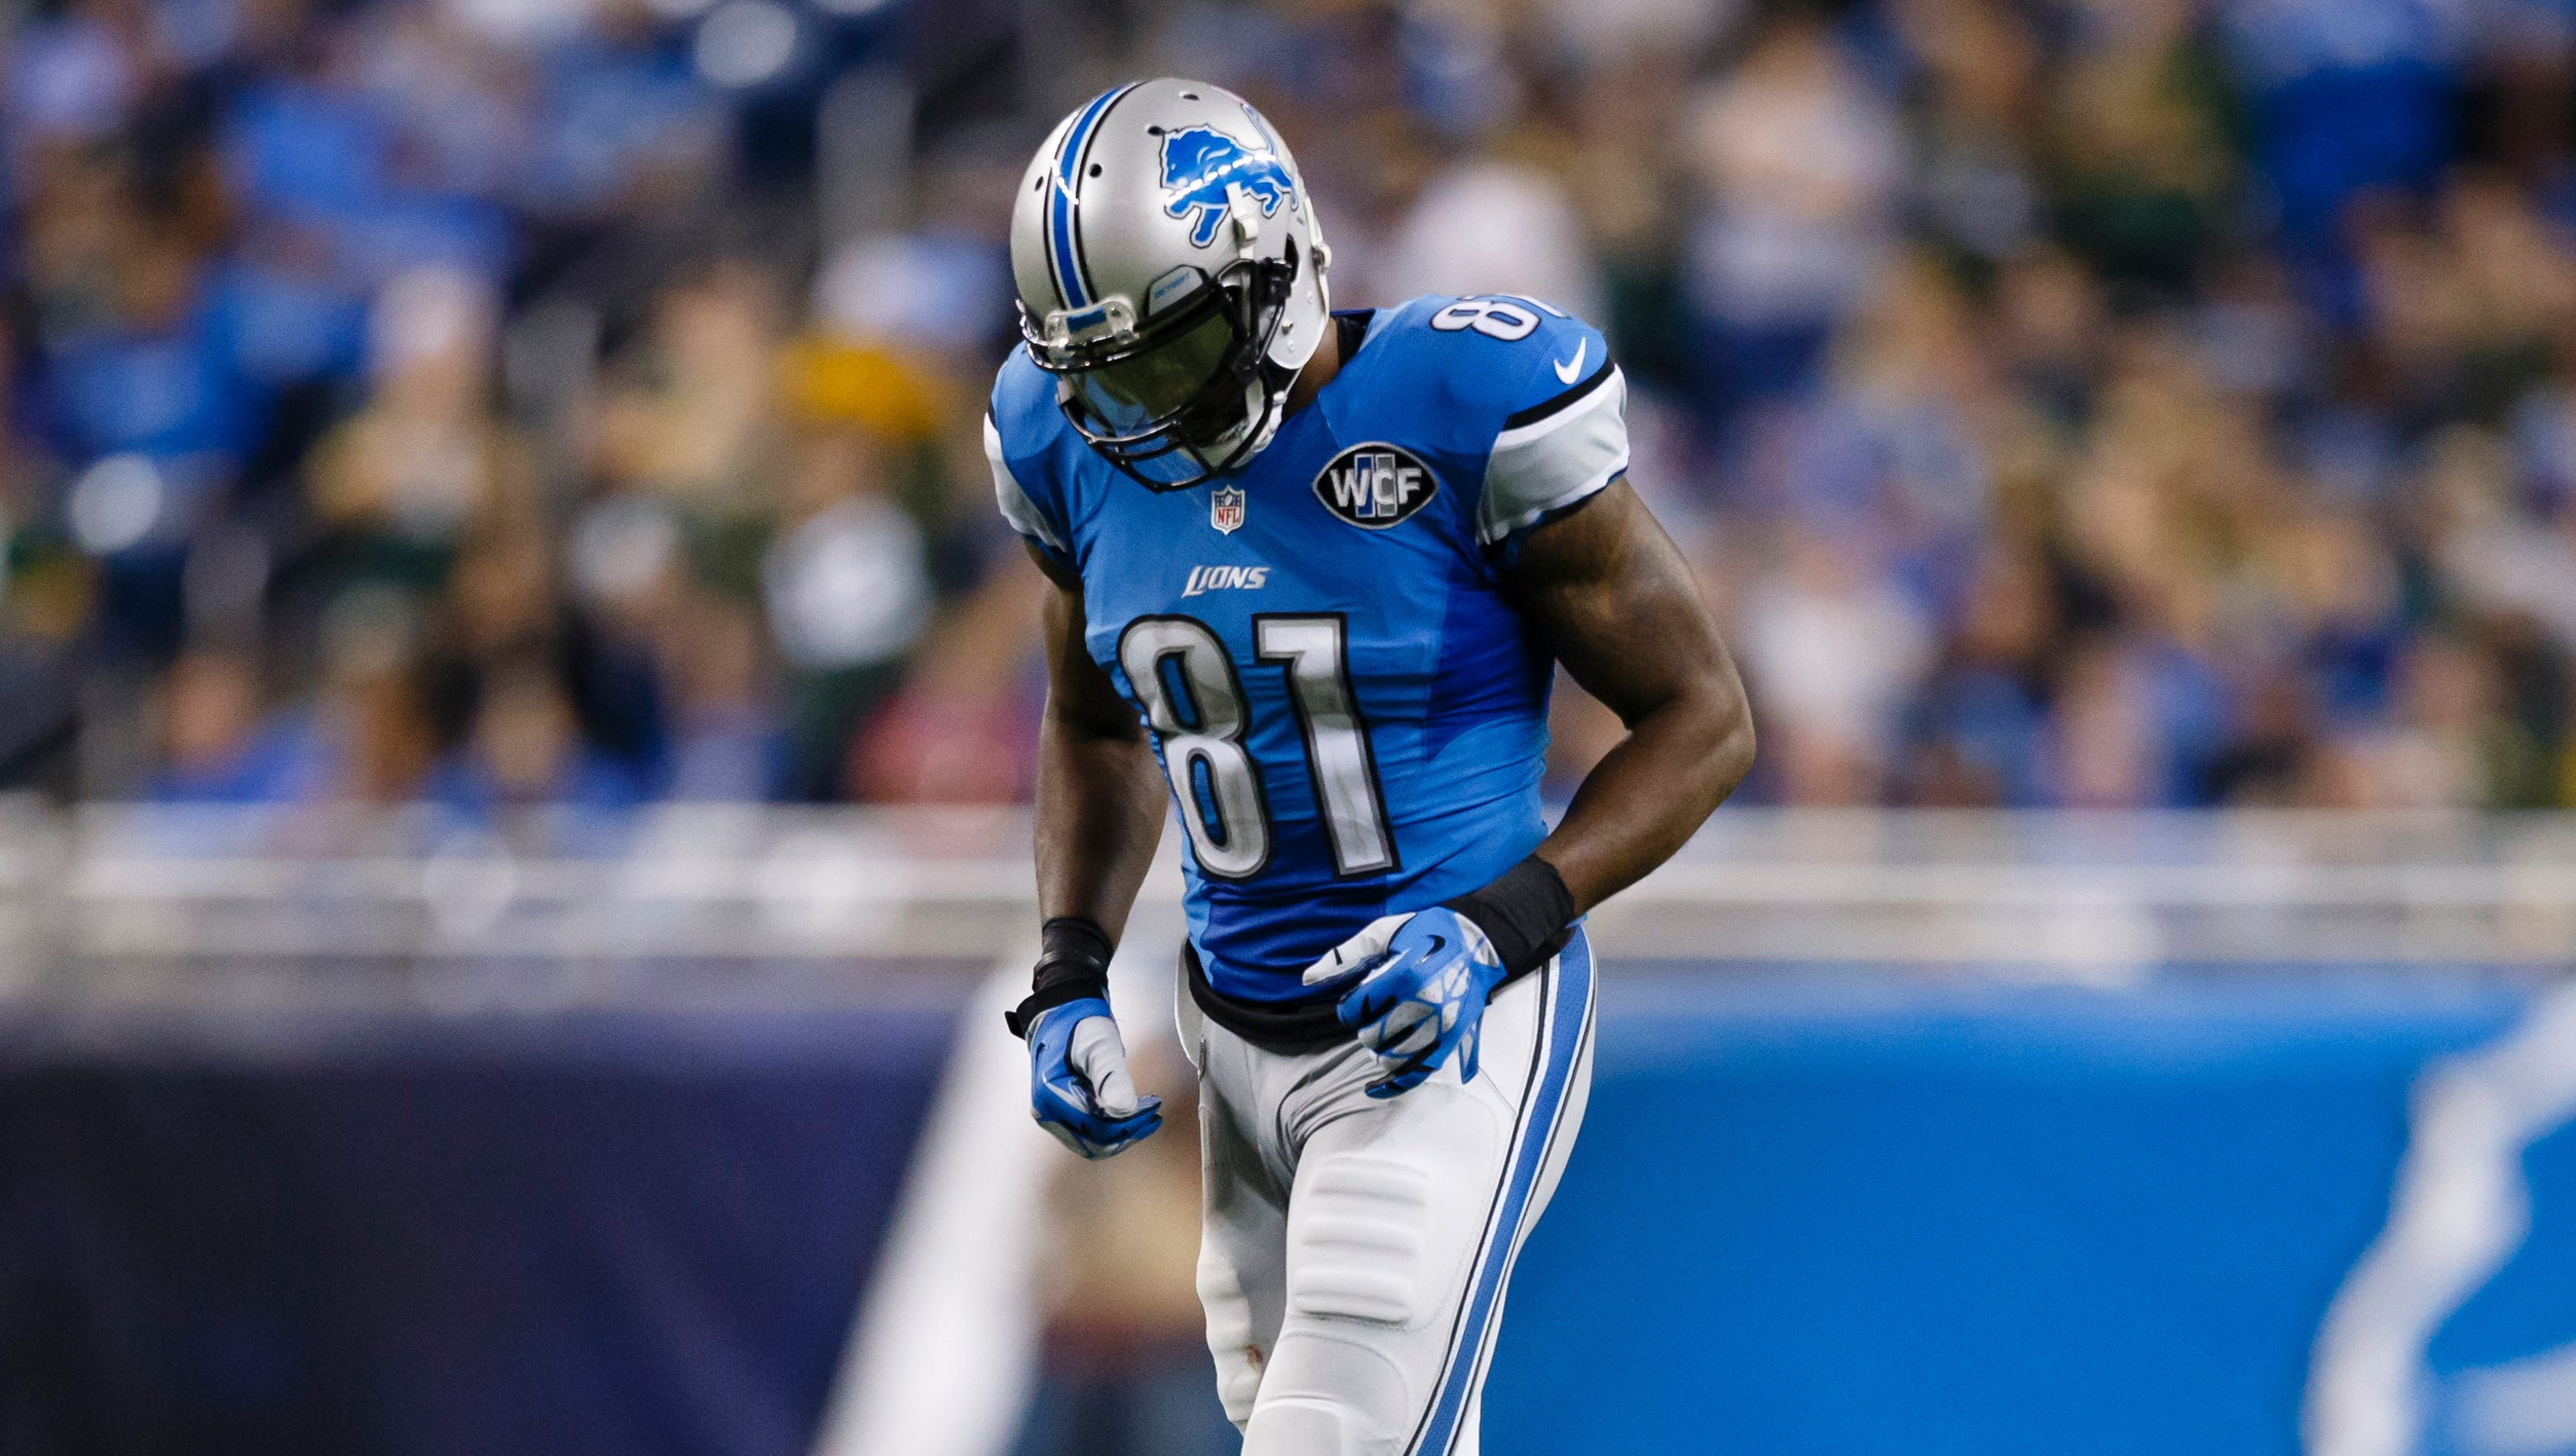 635864740068124979-ap-packers-lions-football-